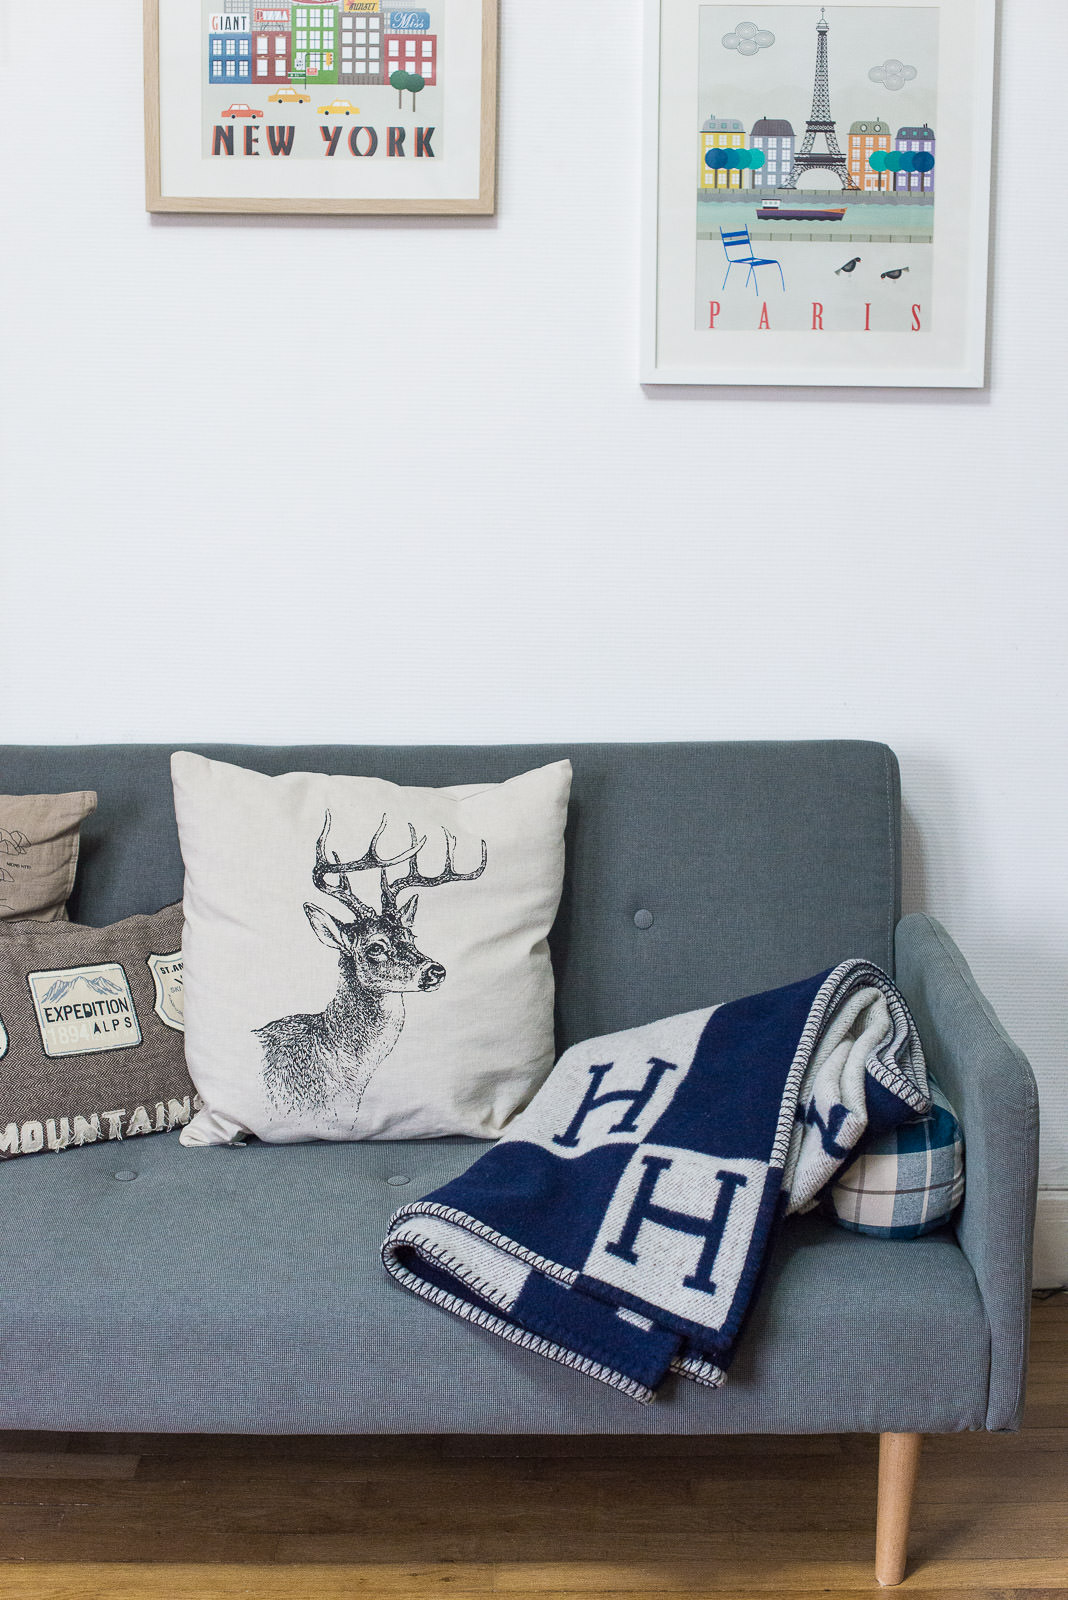 Blog-Mode-And-The-City-Lifestyle-5-petites-choses-111-canapé-achat-design